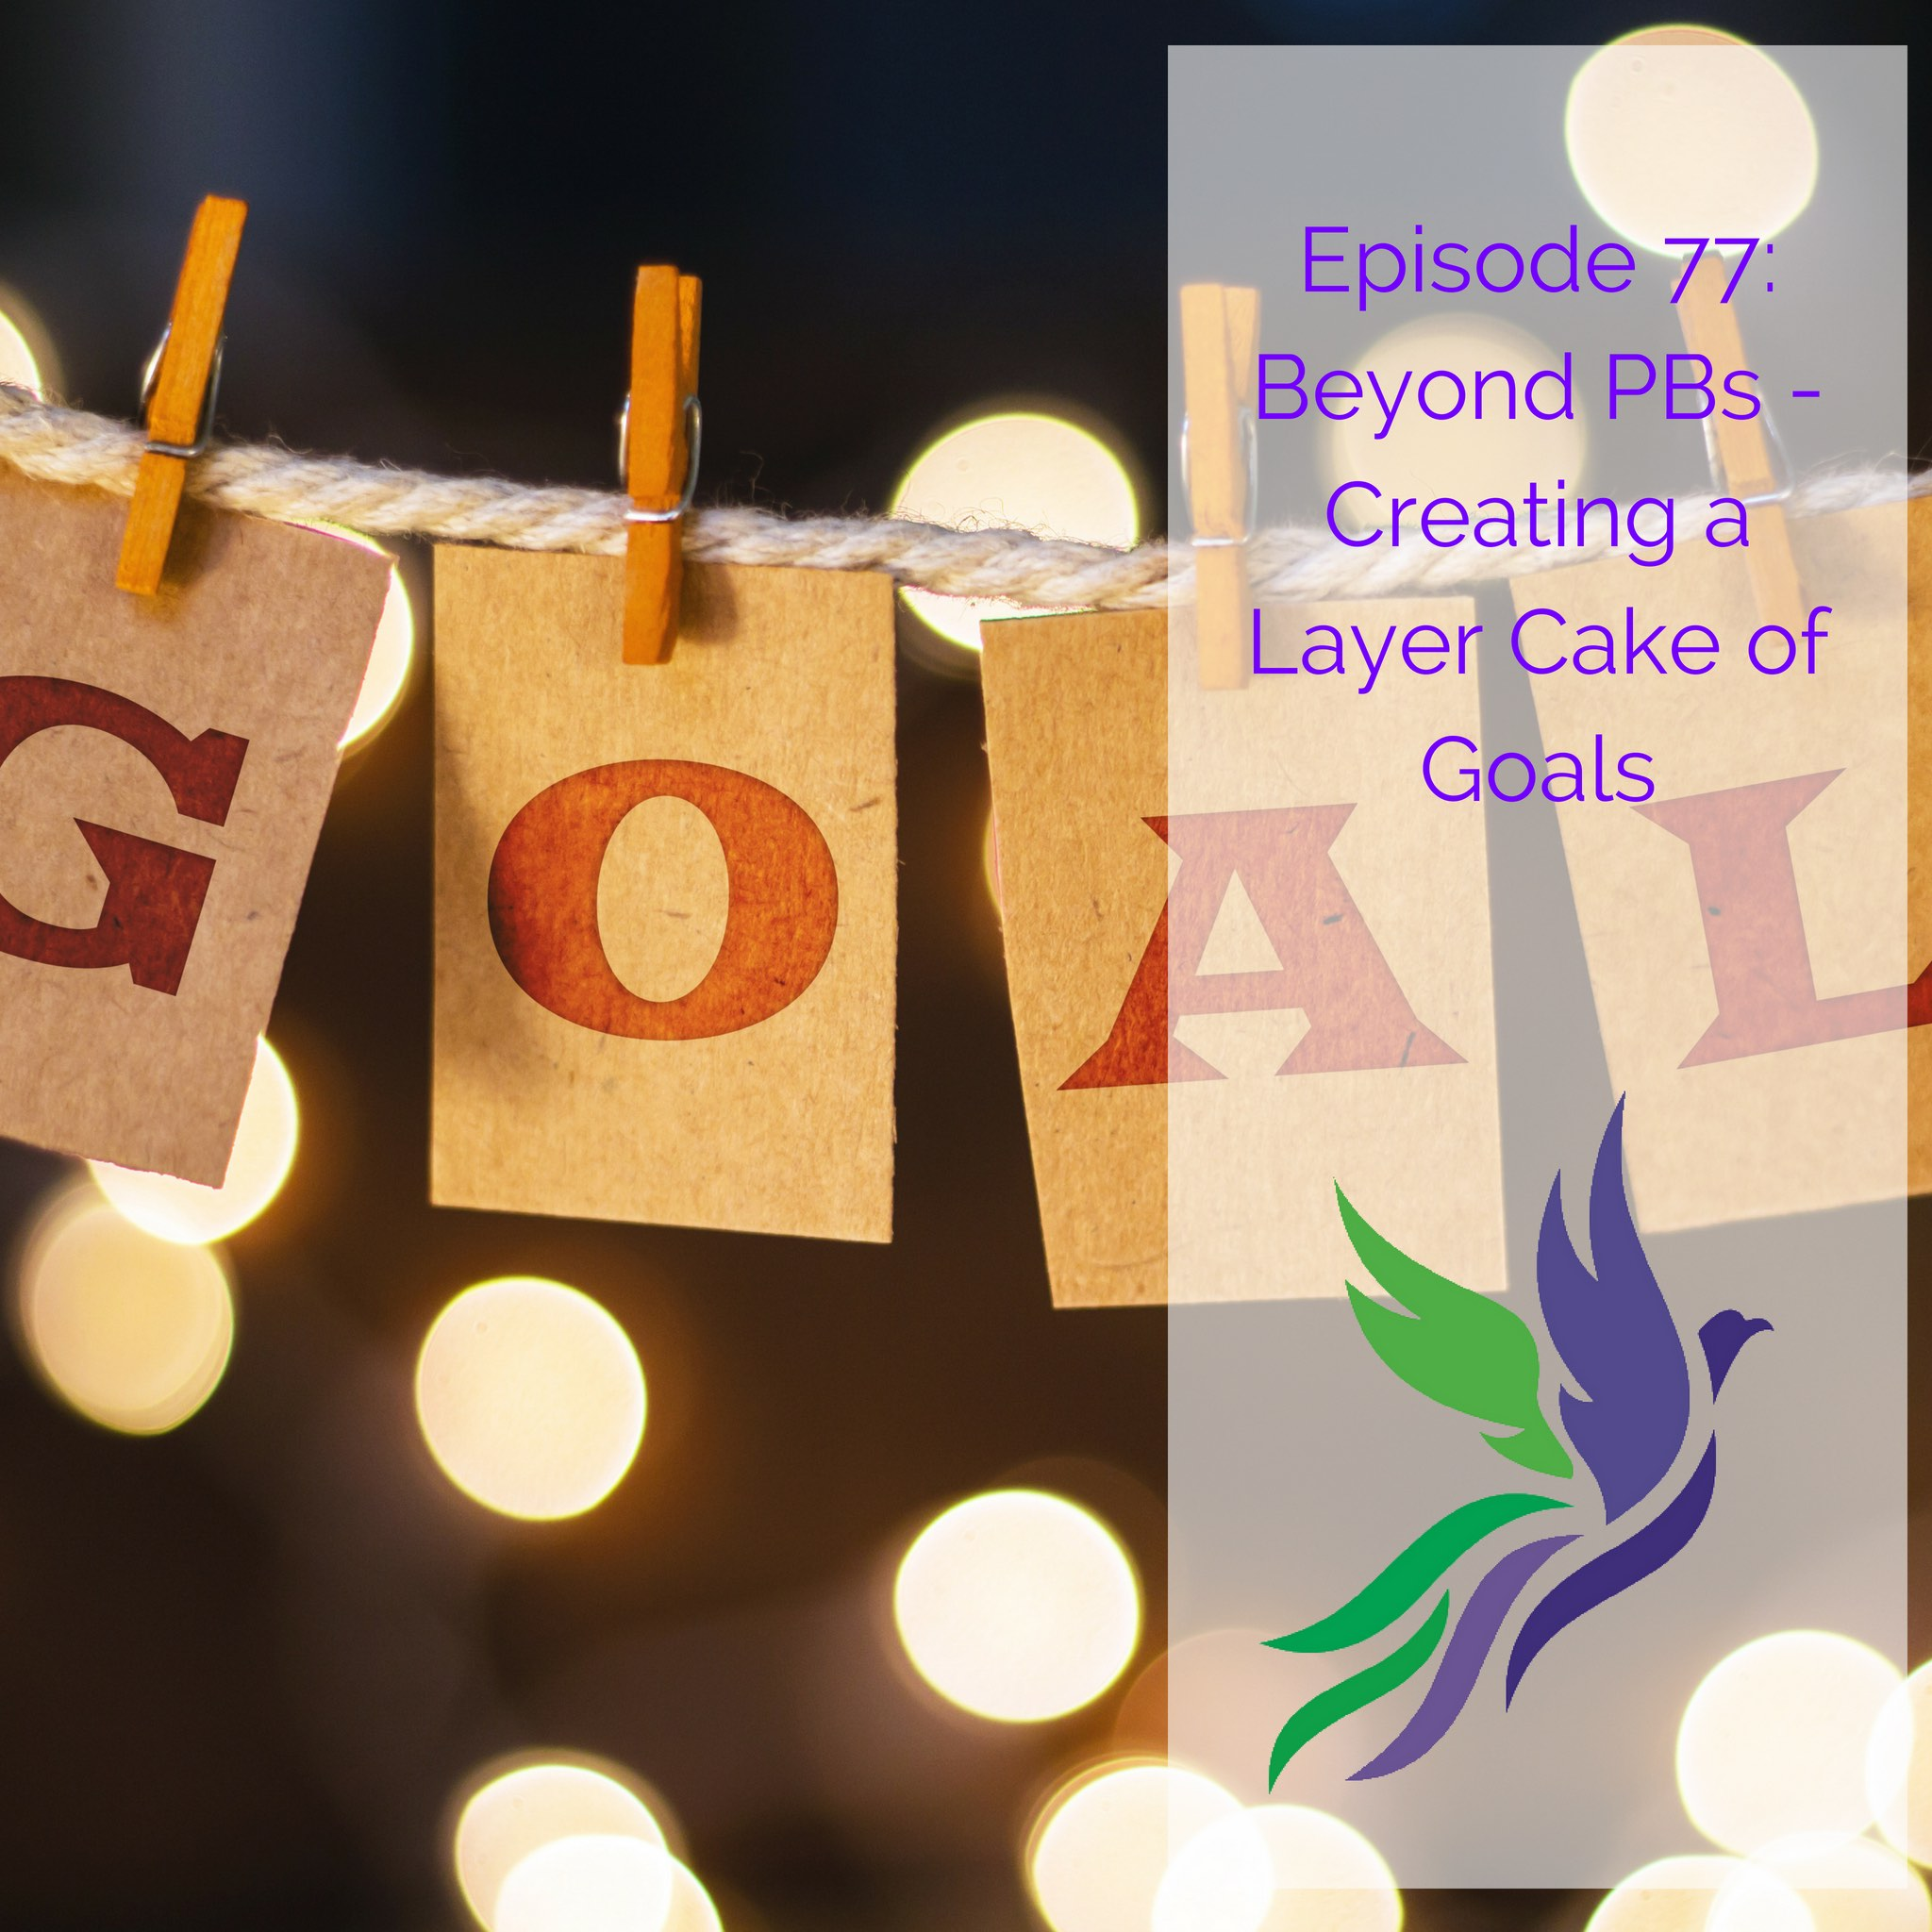 #77 Beyond PBs - Creating a Layer Cake of Goals